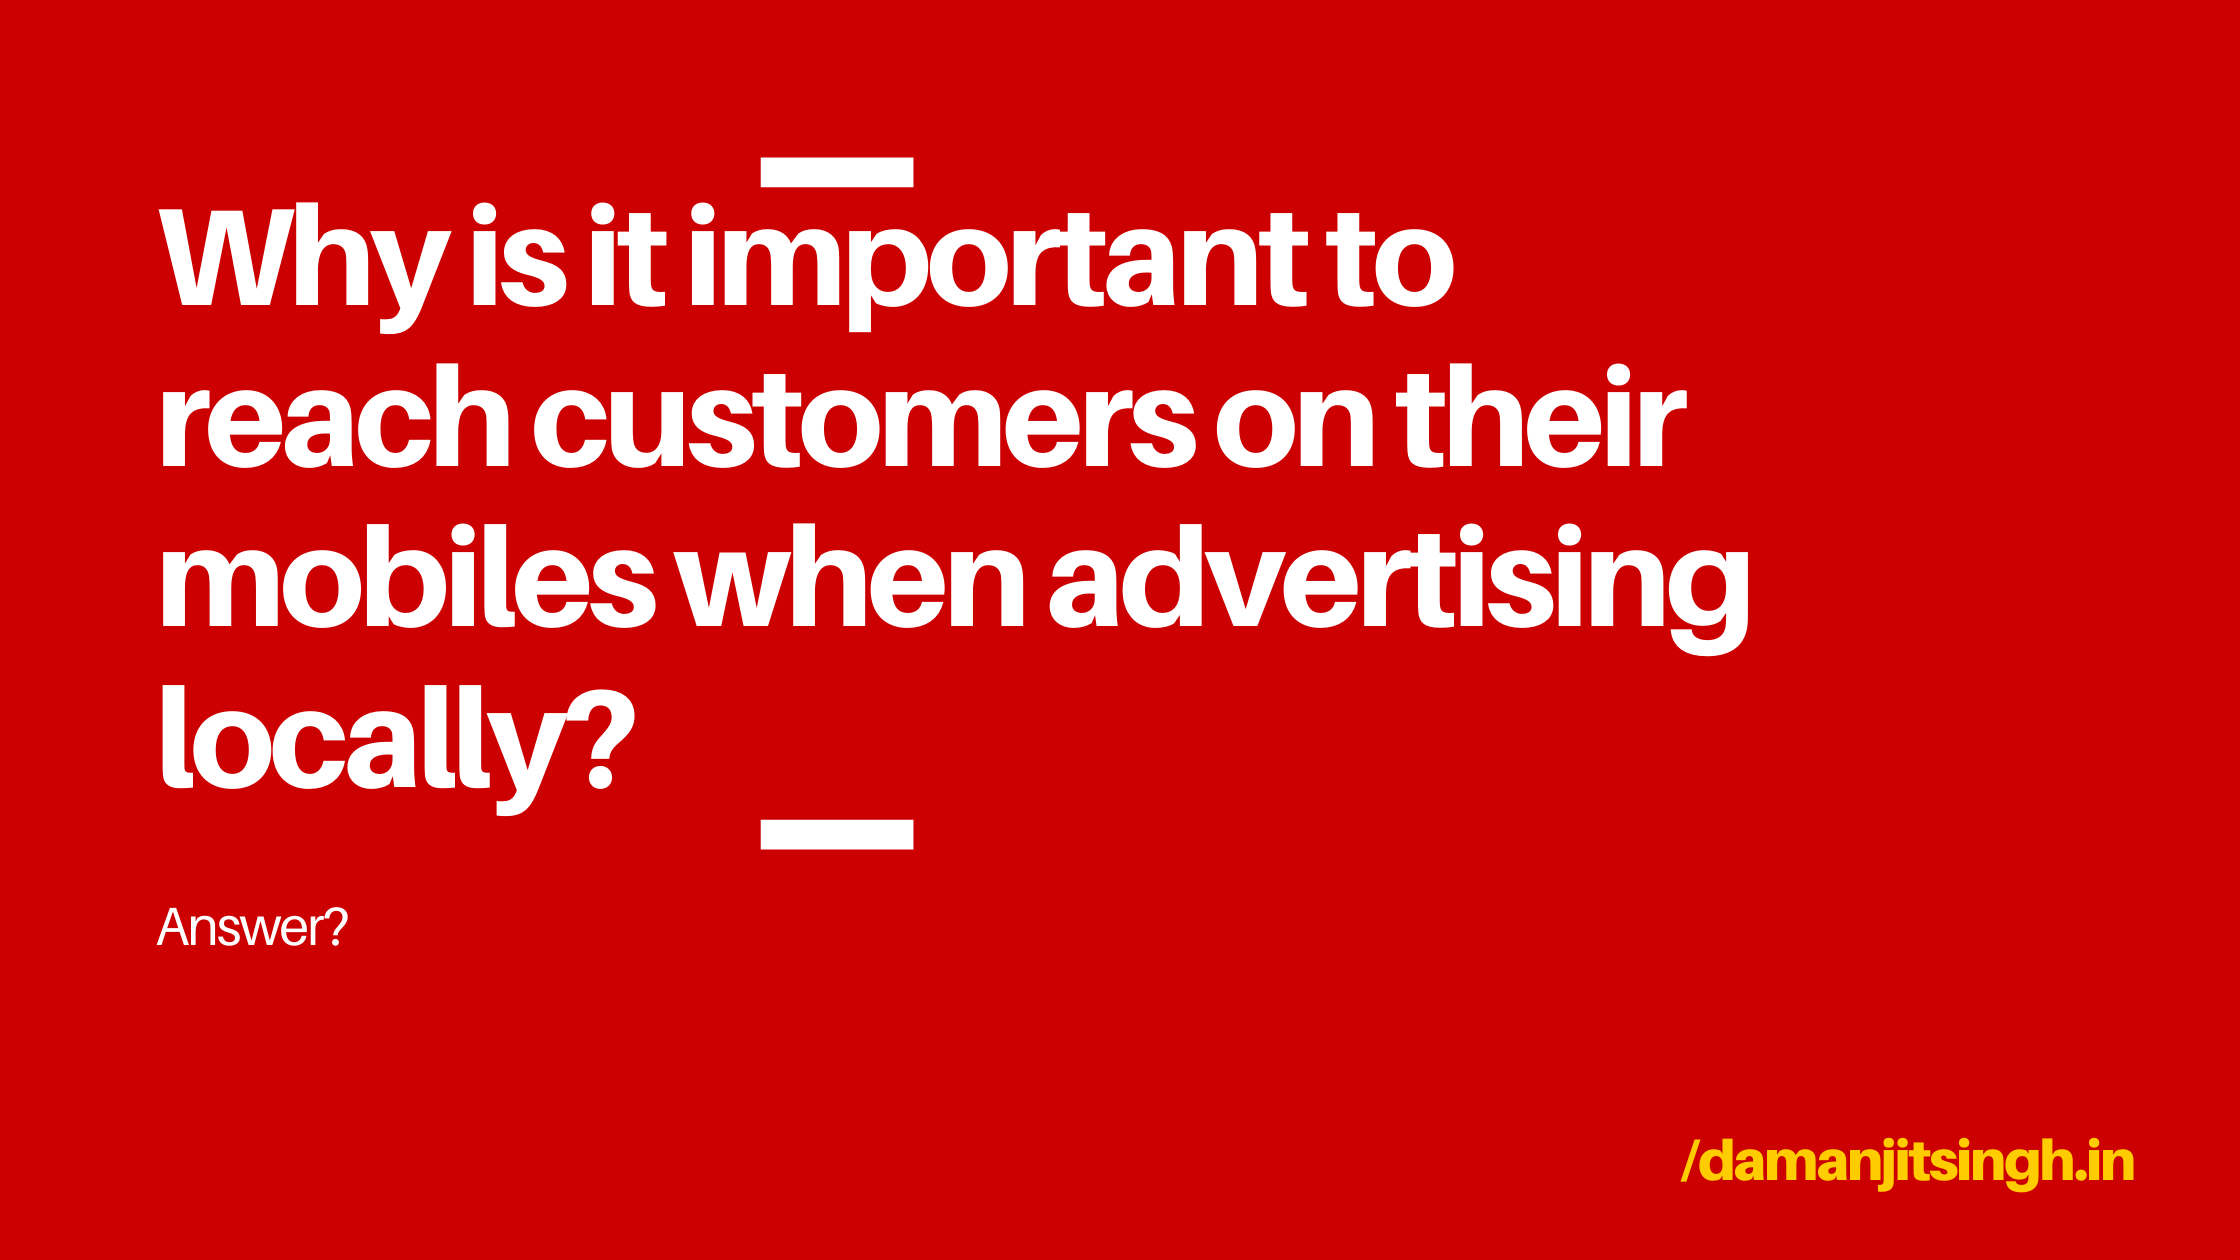 Why is it important to reach customers on their mobiles when advertising locally?